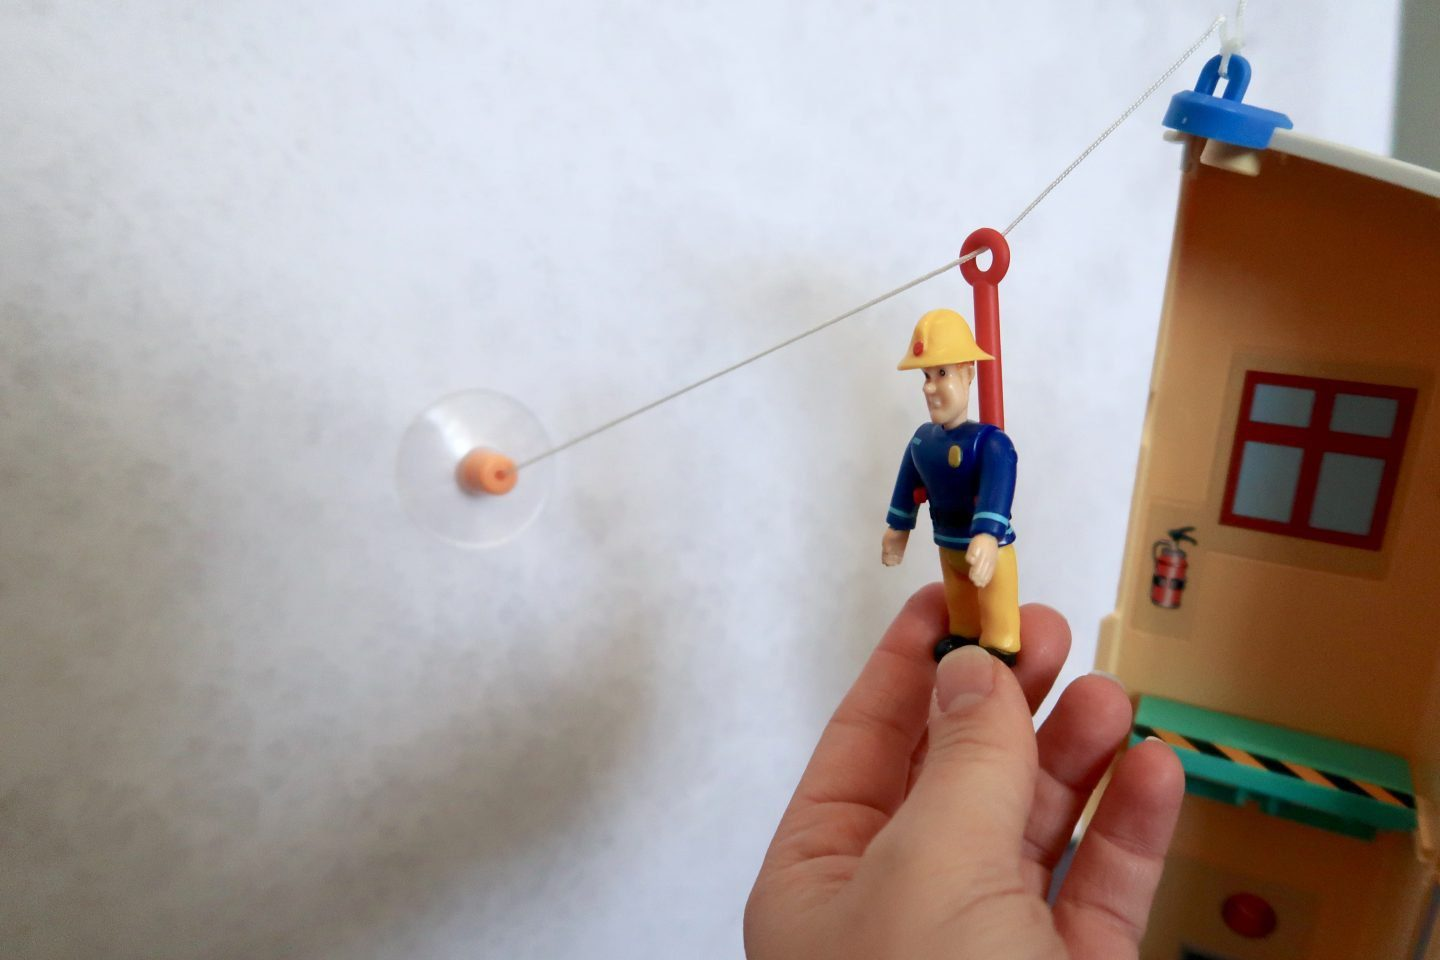 A Fireman Sam toy going down a zip wire